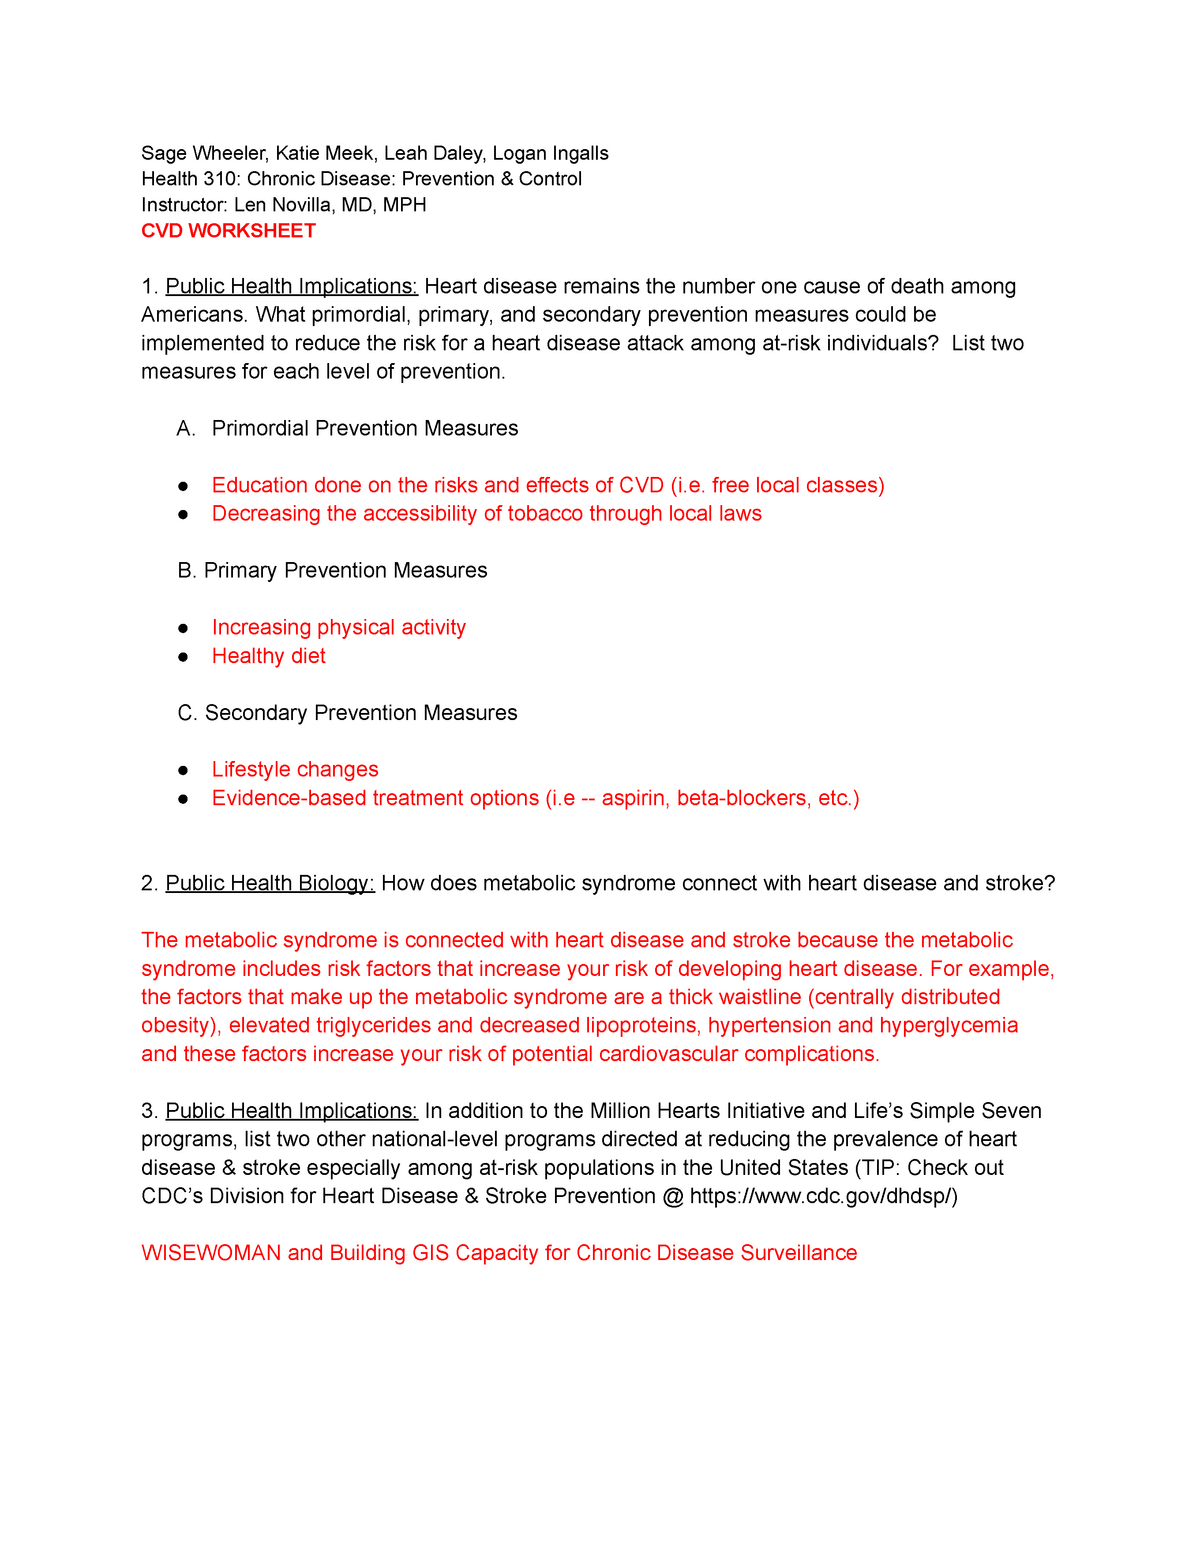 CVD worksheet - Lecture notes on cardiovascular disease